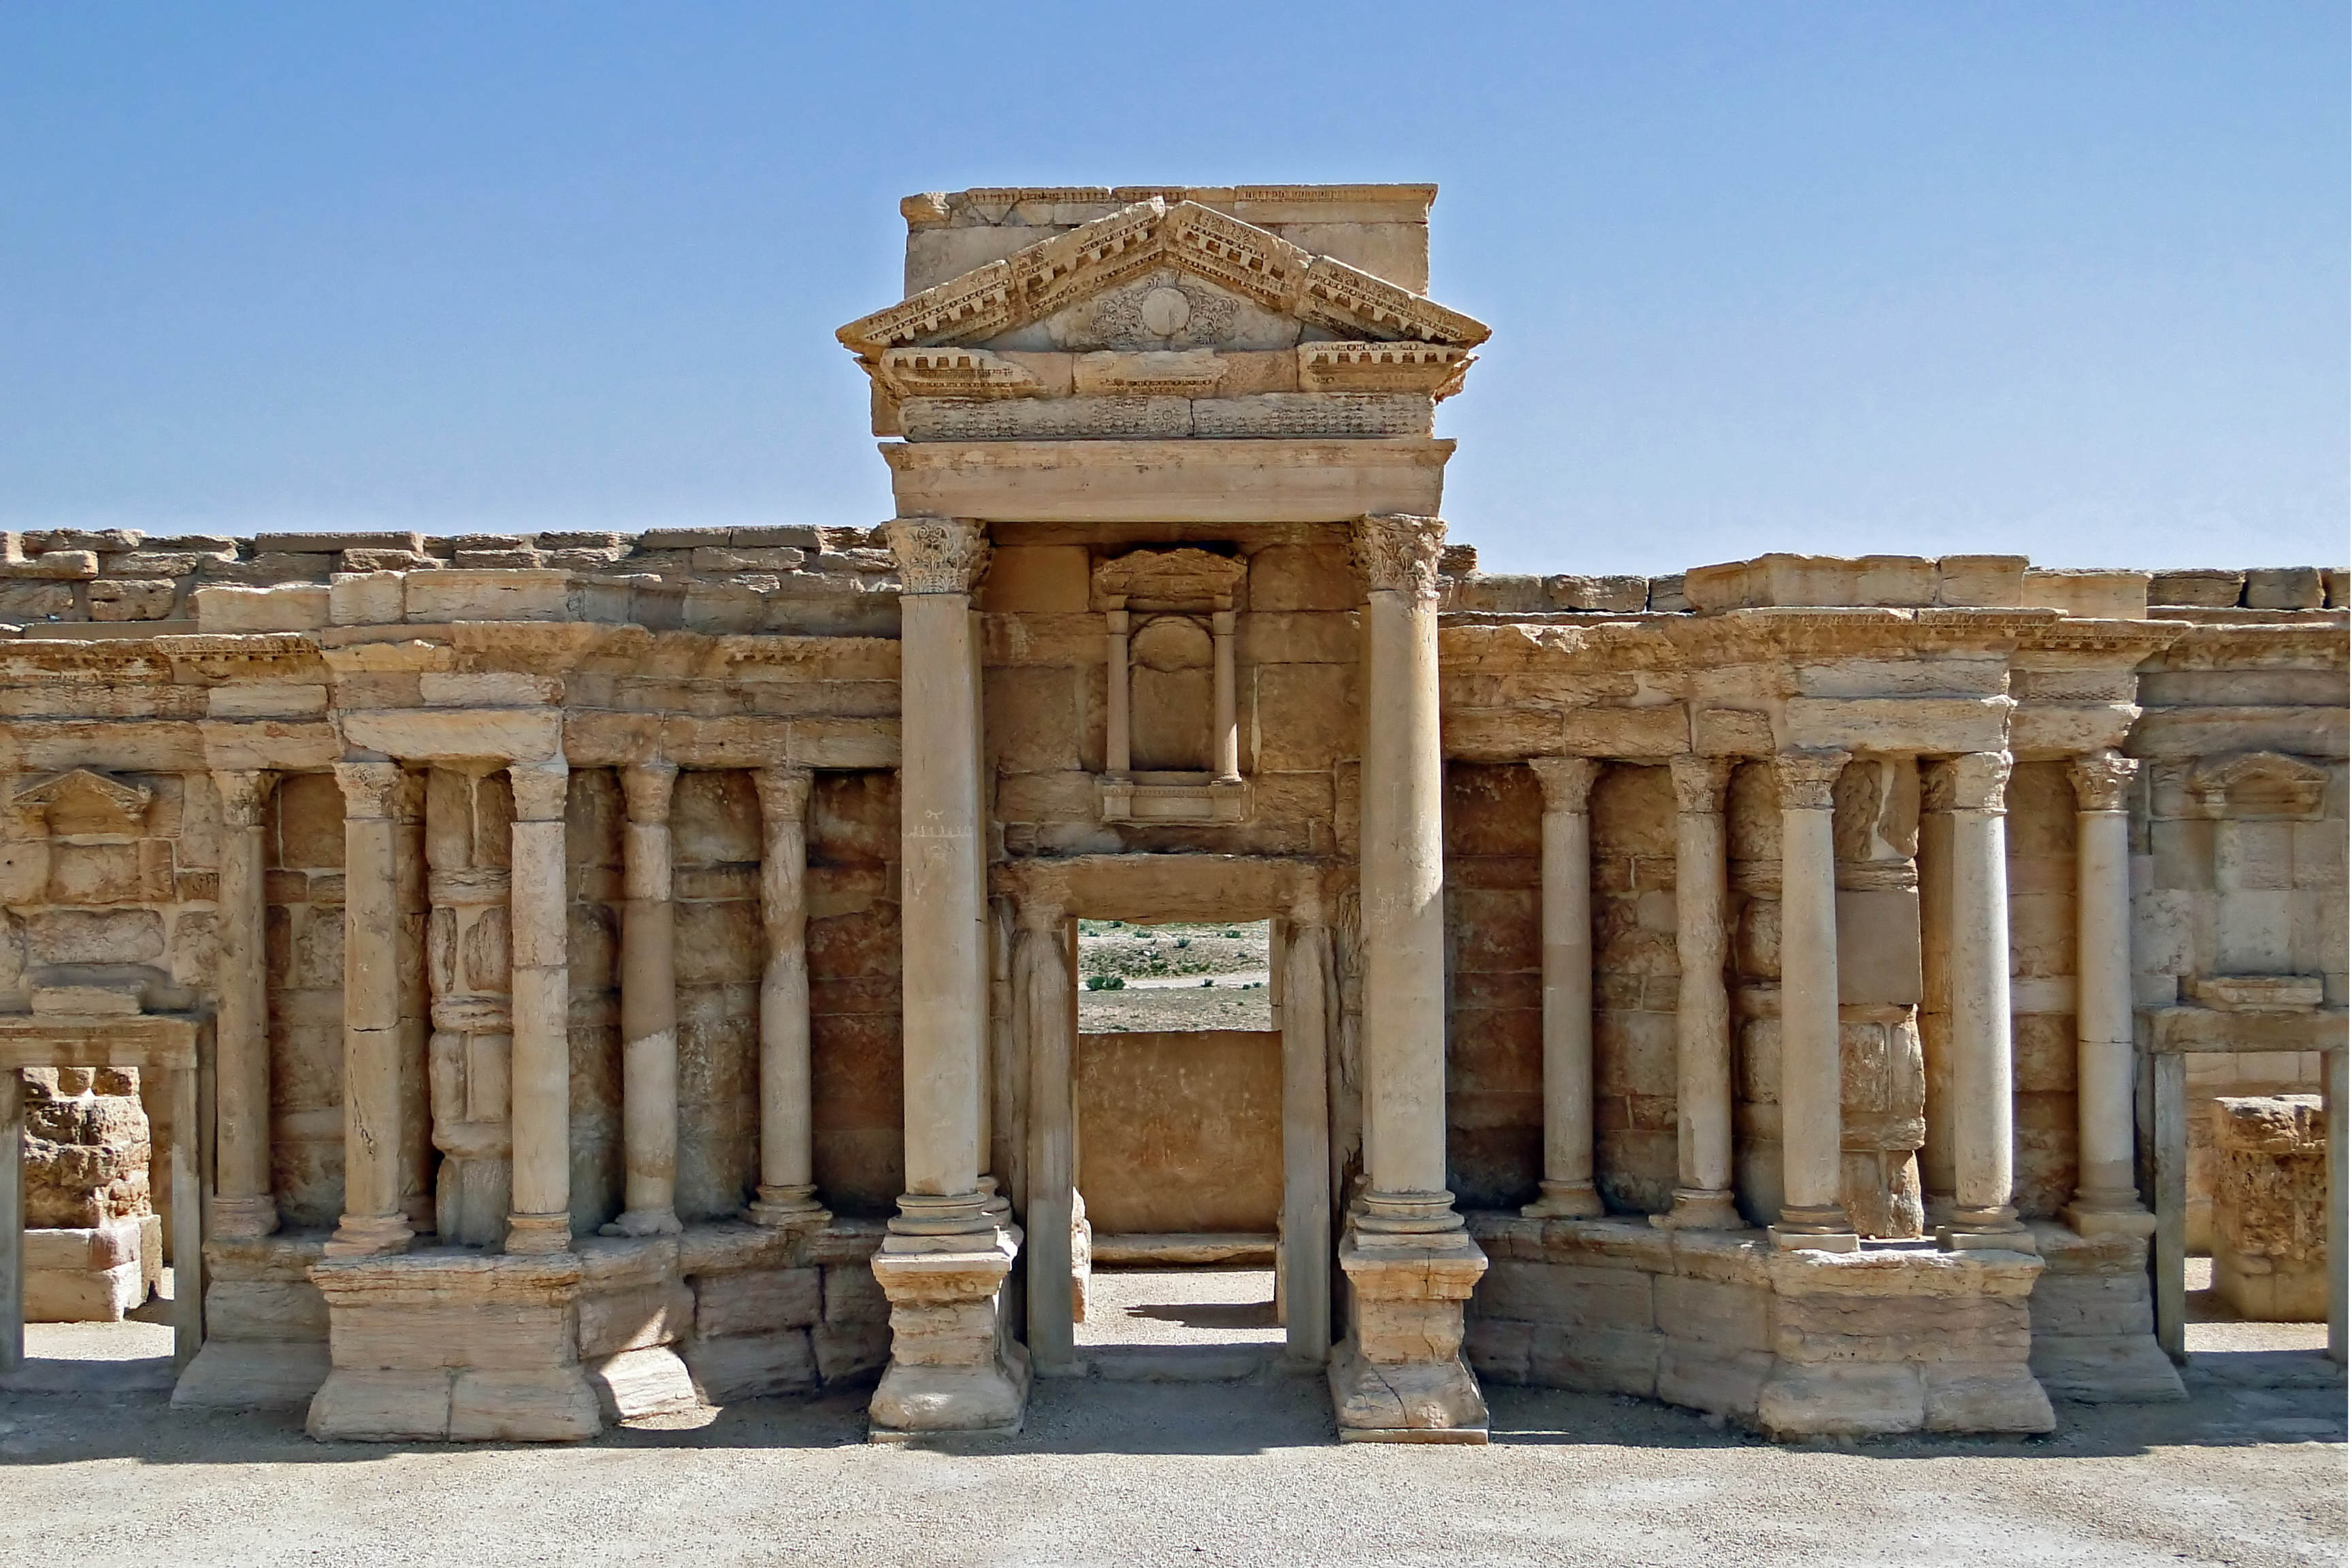 Roman theatre of Palmyra 05 Shocking Photos Show How An Ancient City Was Destroyed By ISIS